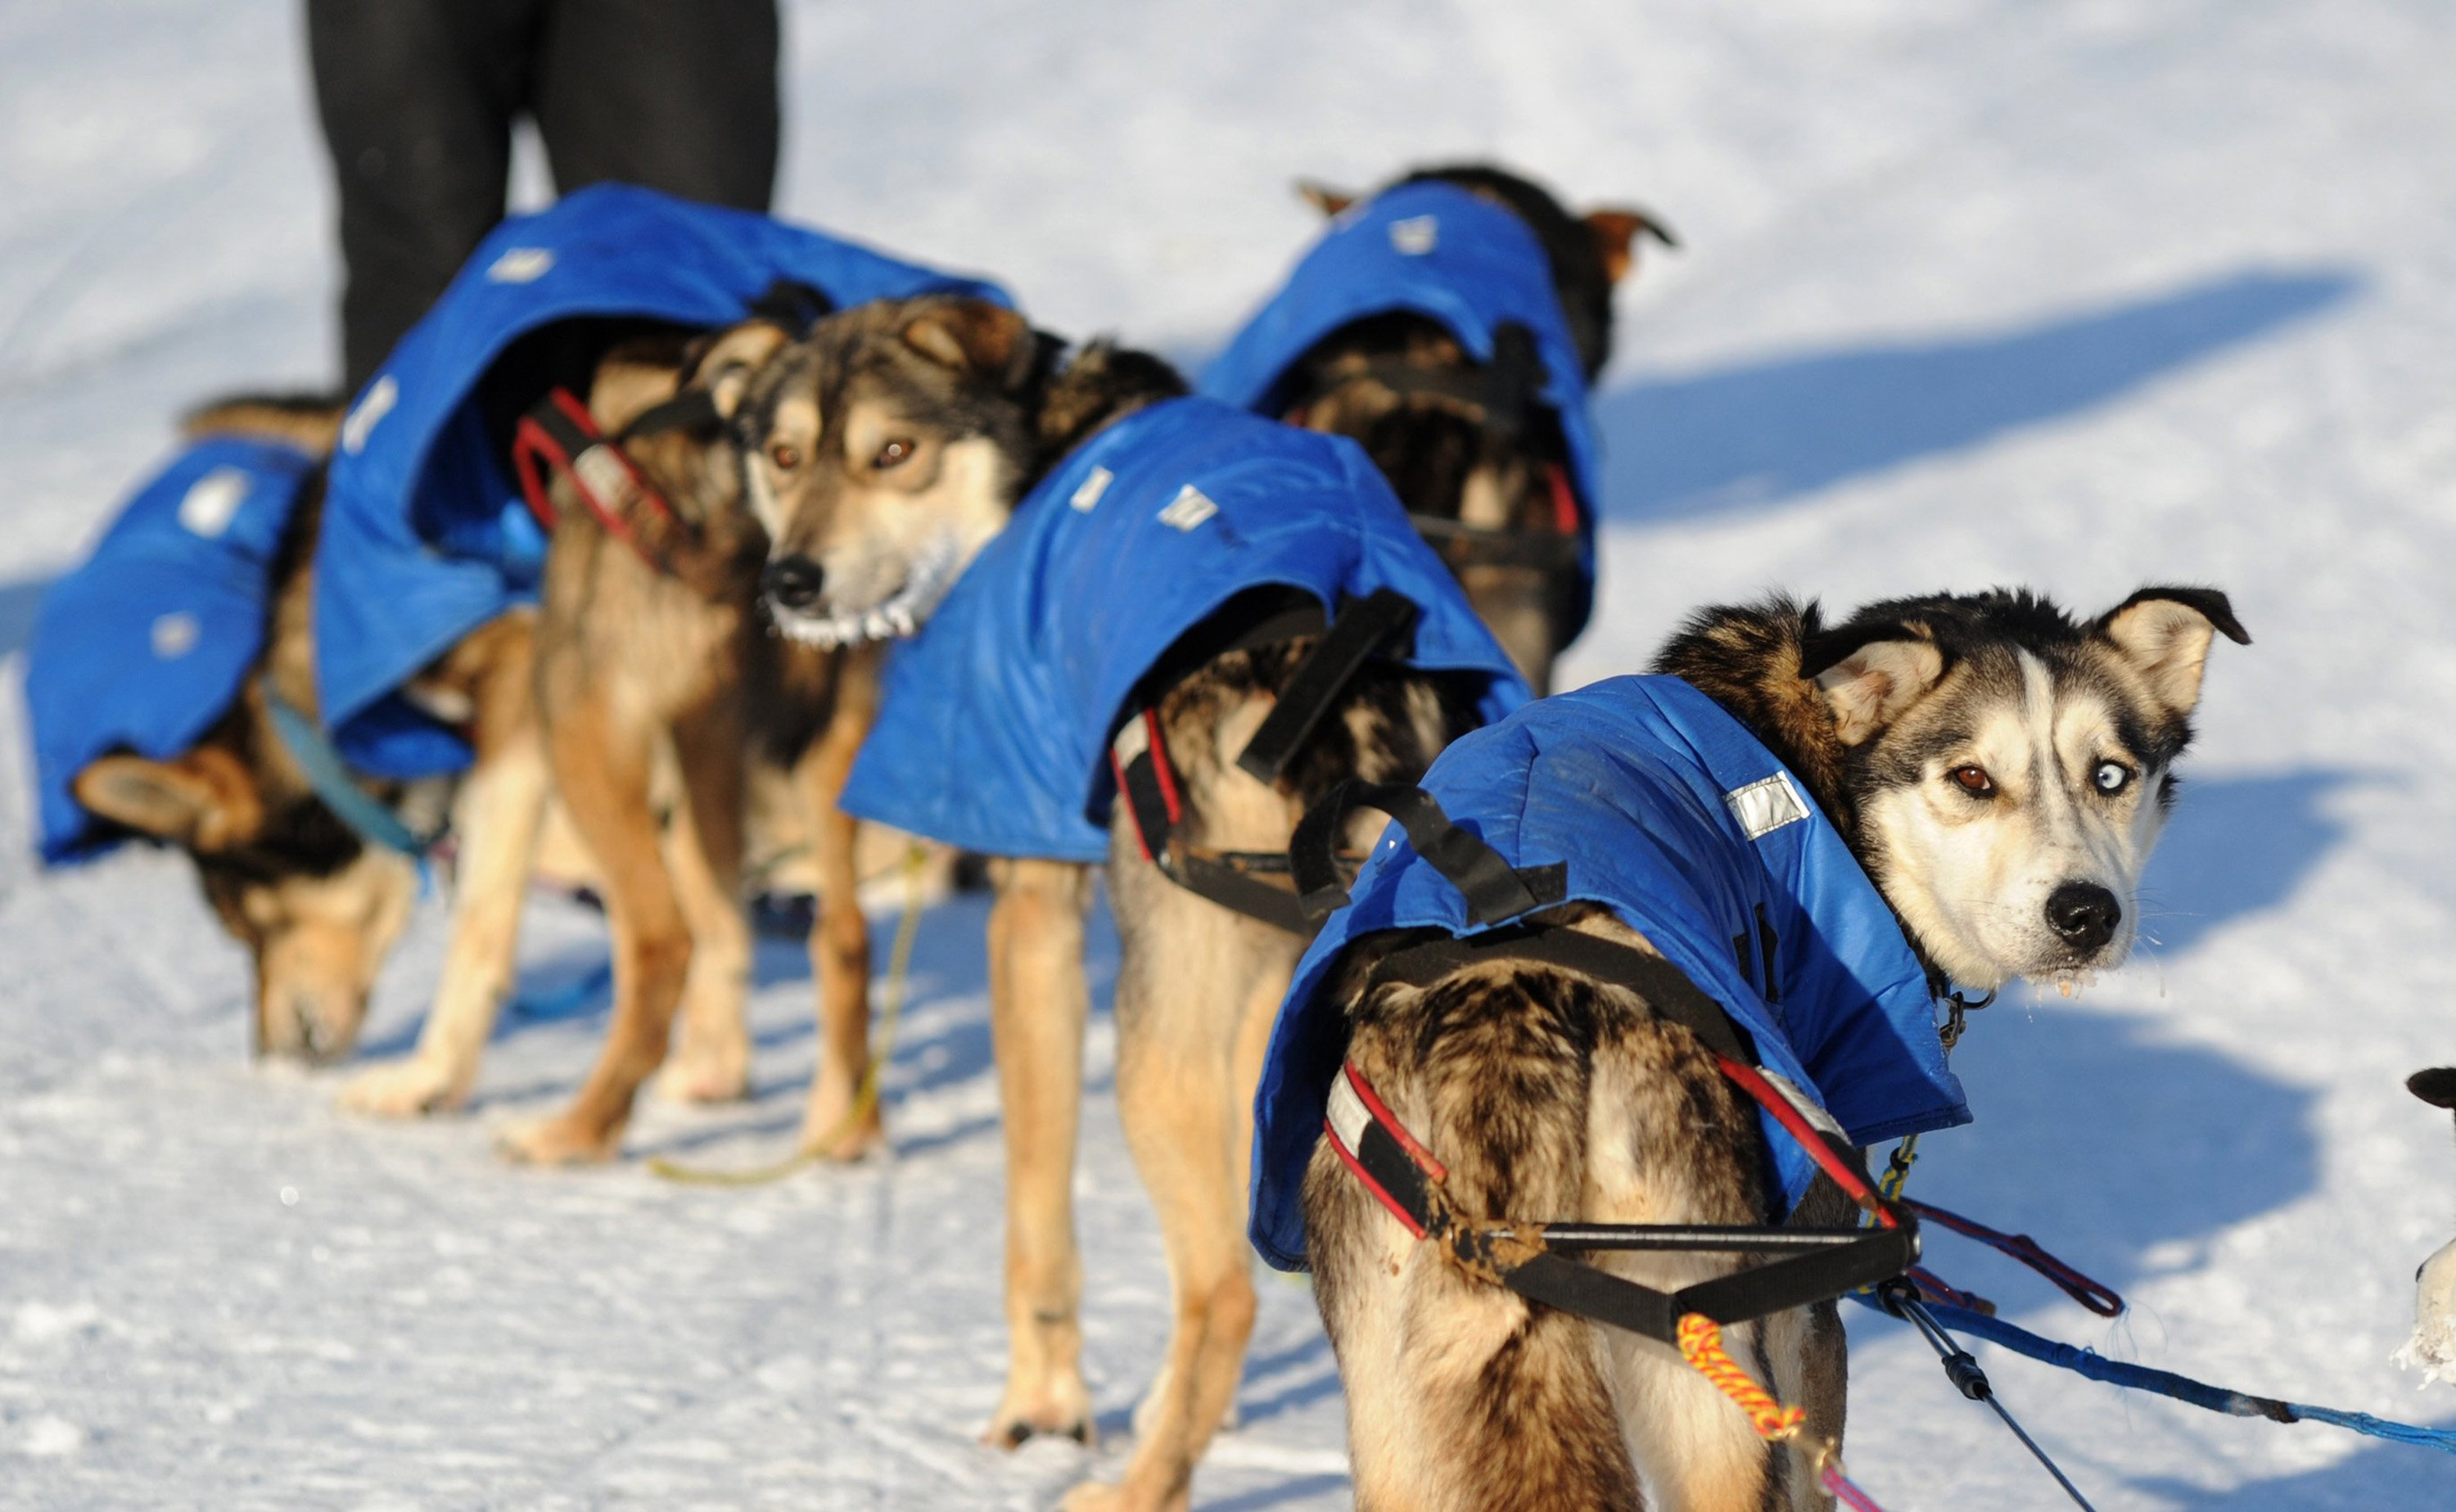 Mitch Seavey's dogs look back at the musher after they arrived at the White Mountain checkpoint during Alaska's Iditarod sled-dog race on March 10, 2014